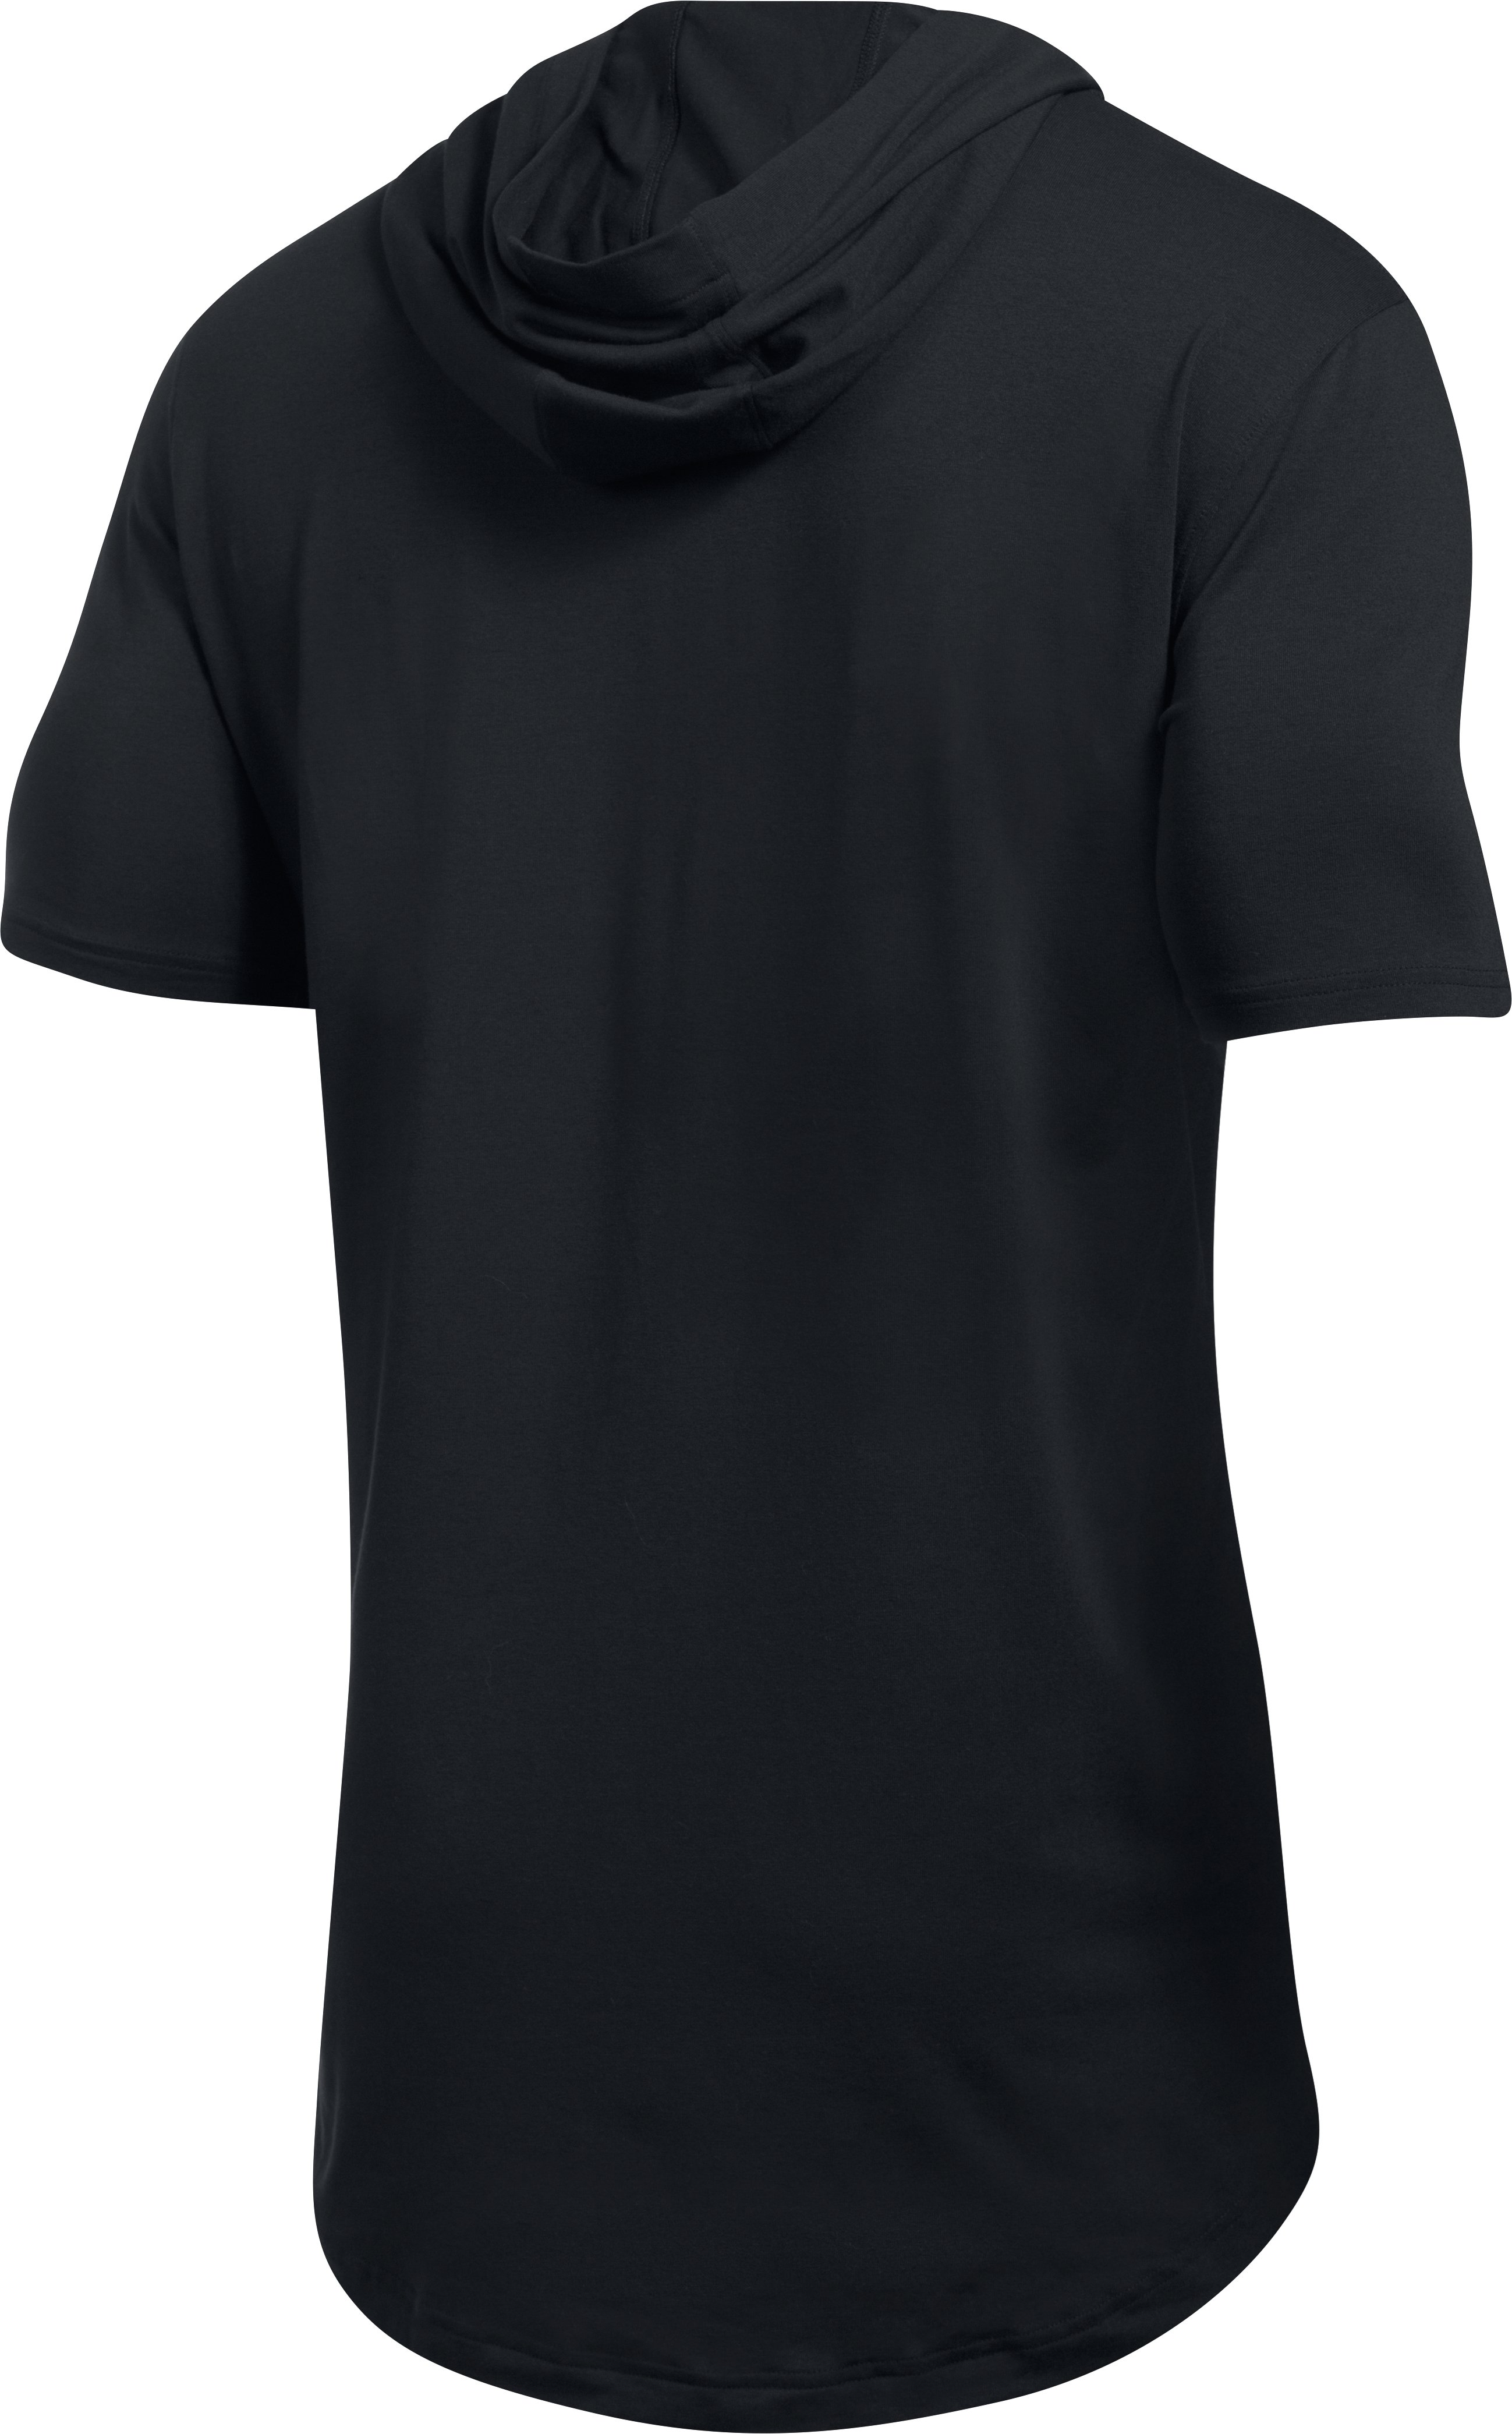 Men's UA Baseline T-Shirt Hooded T-Shirt, Black ,